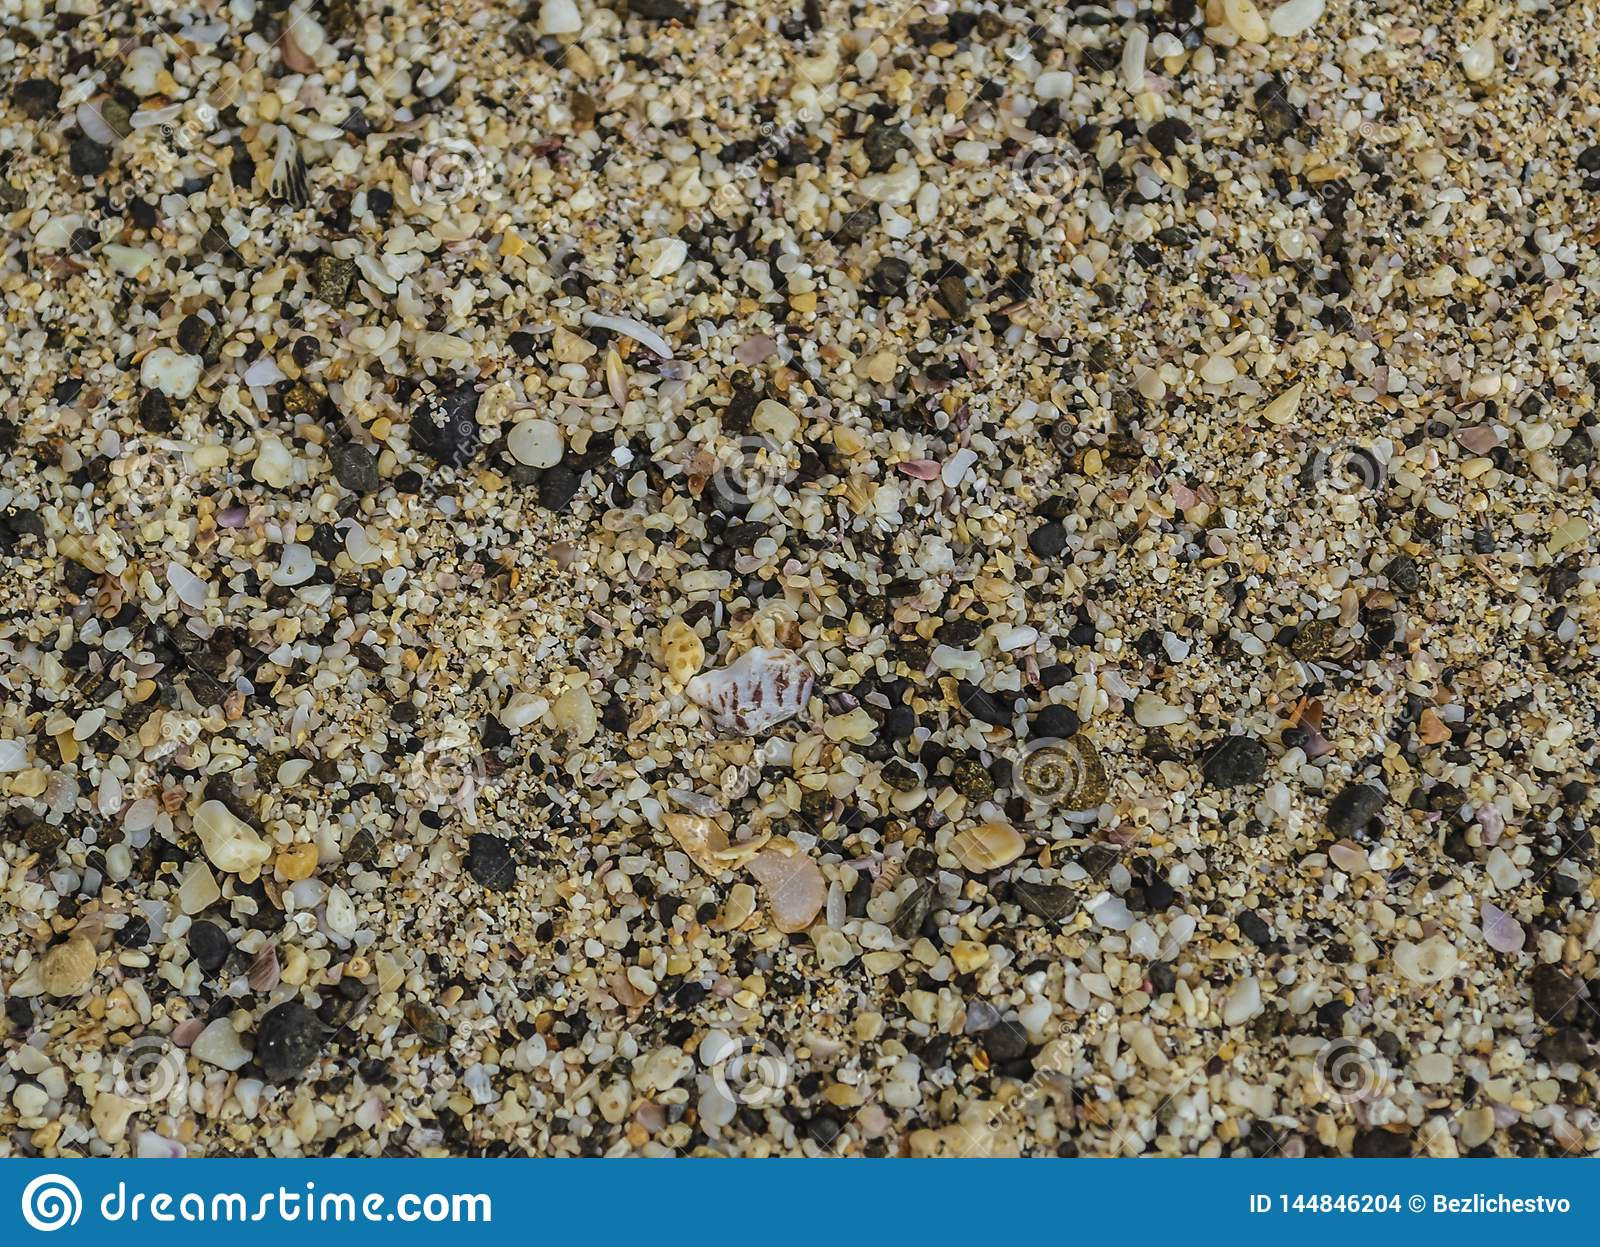 Sand beach texture with shells and small pebbles close-up